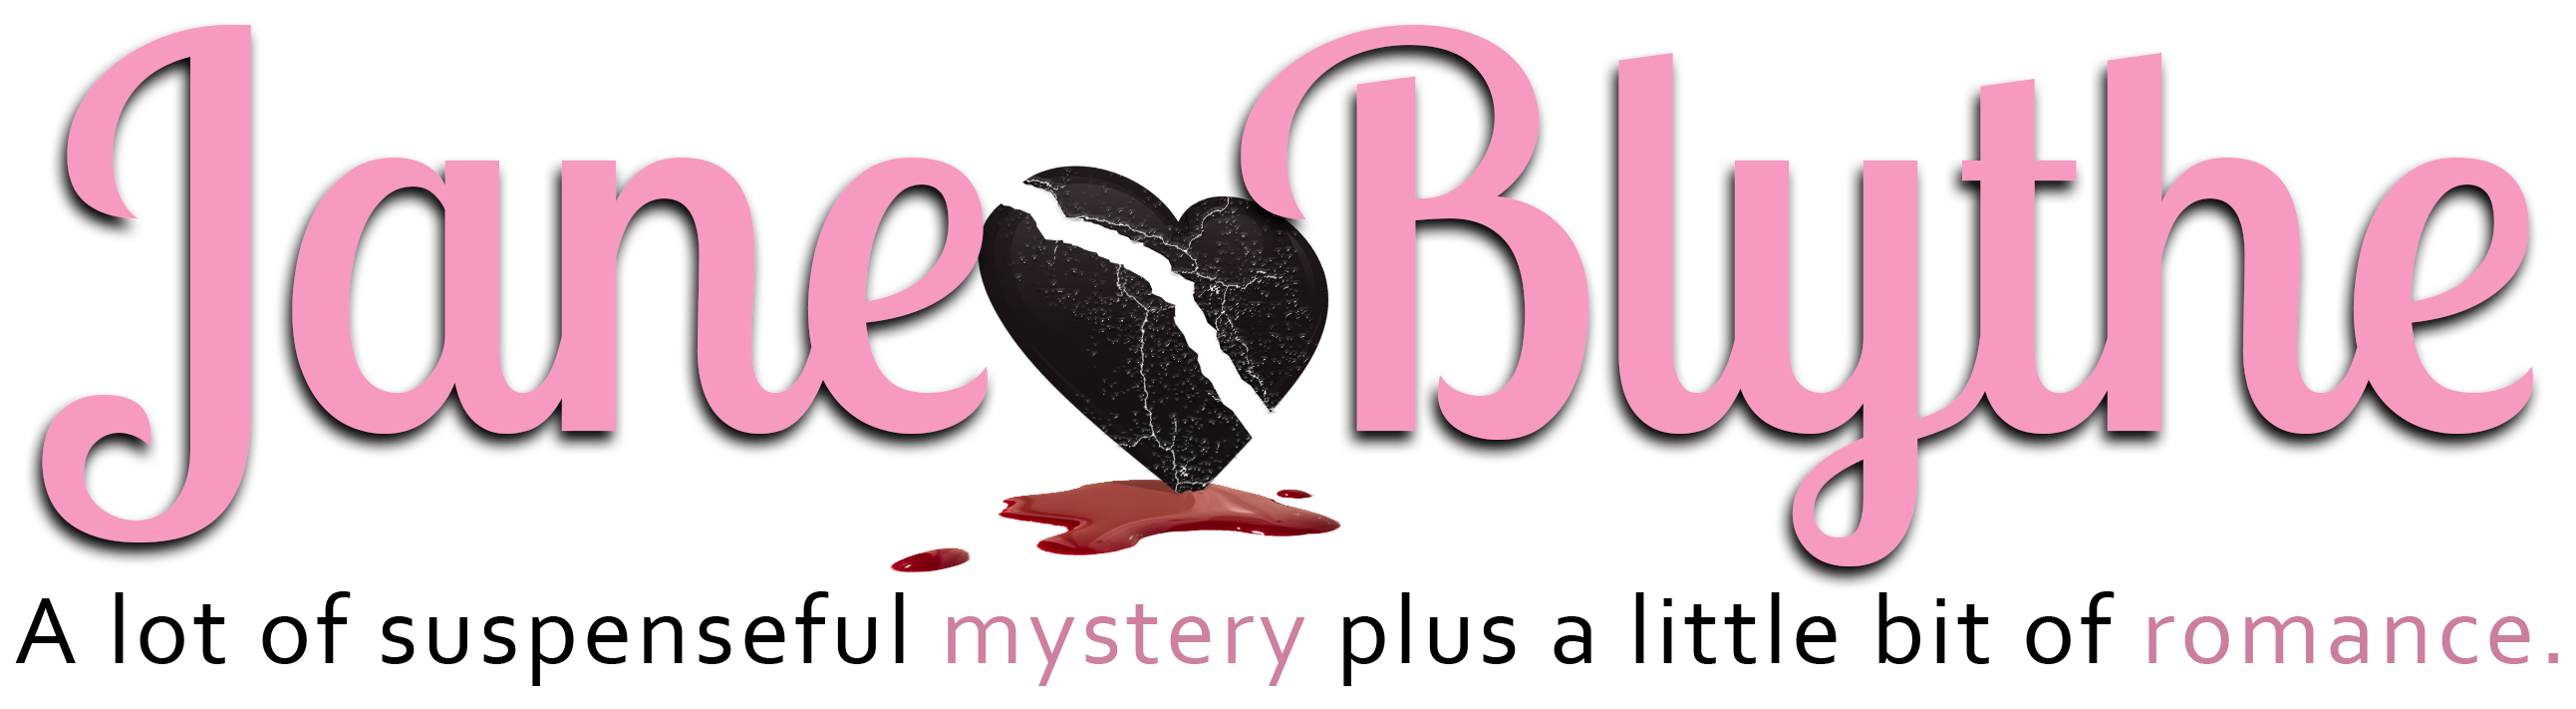 Jane Blythe – Romantic Suspense Author